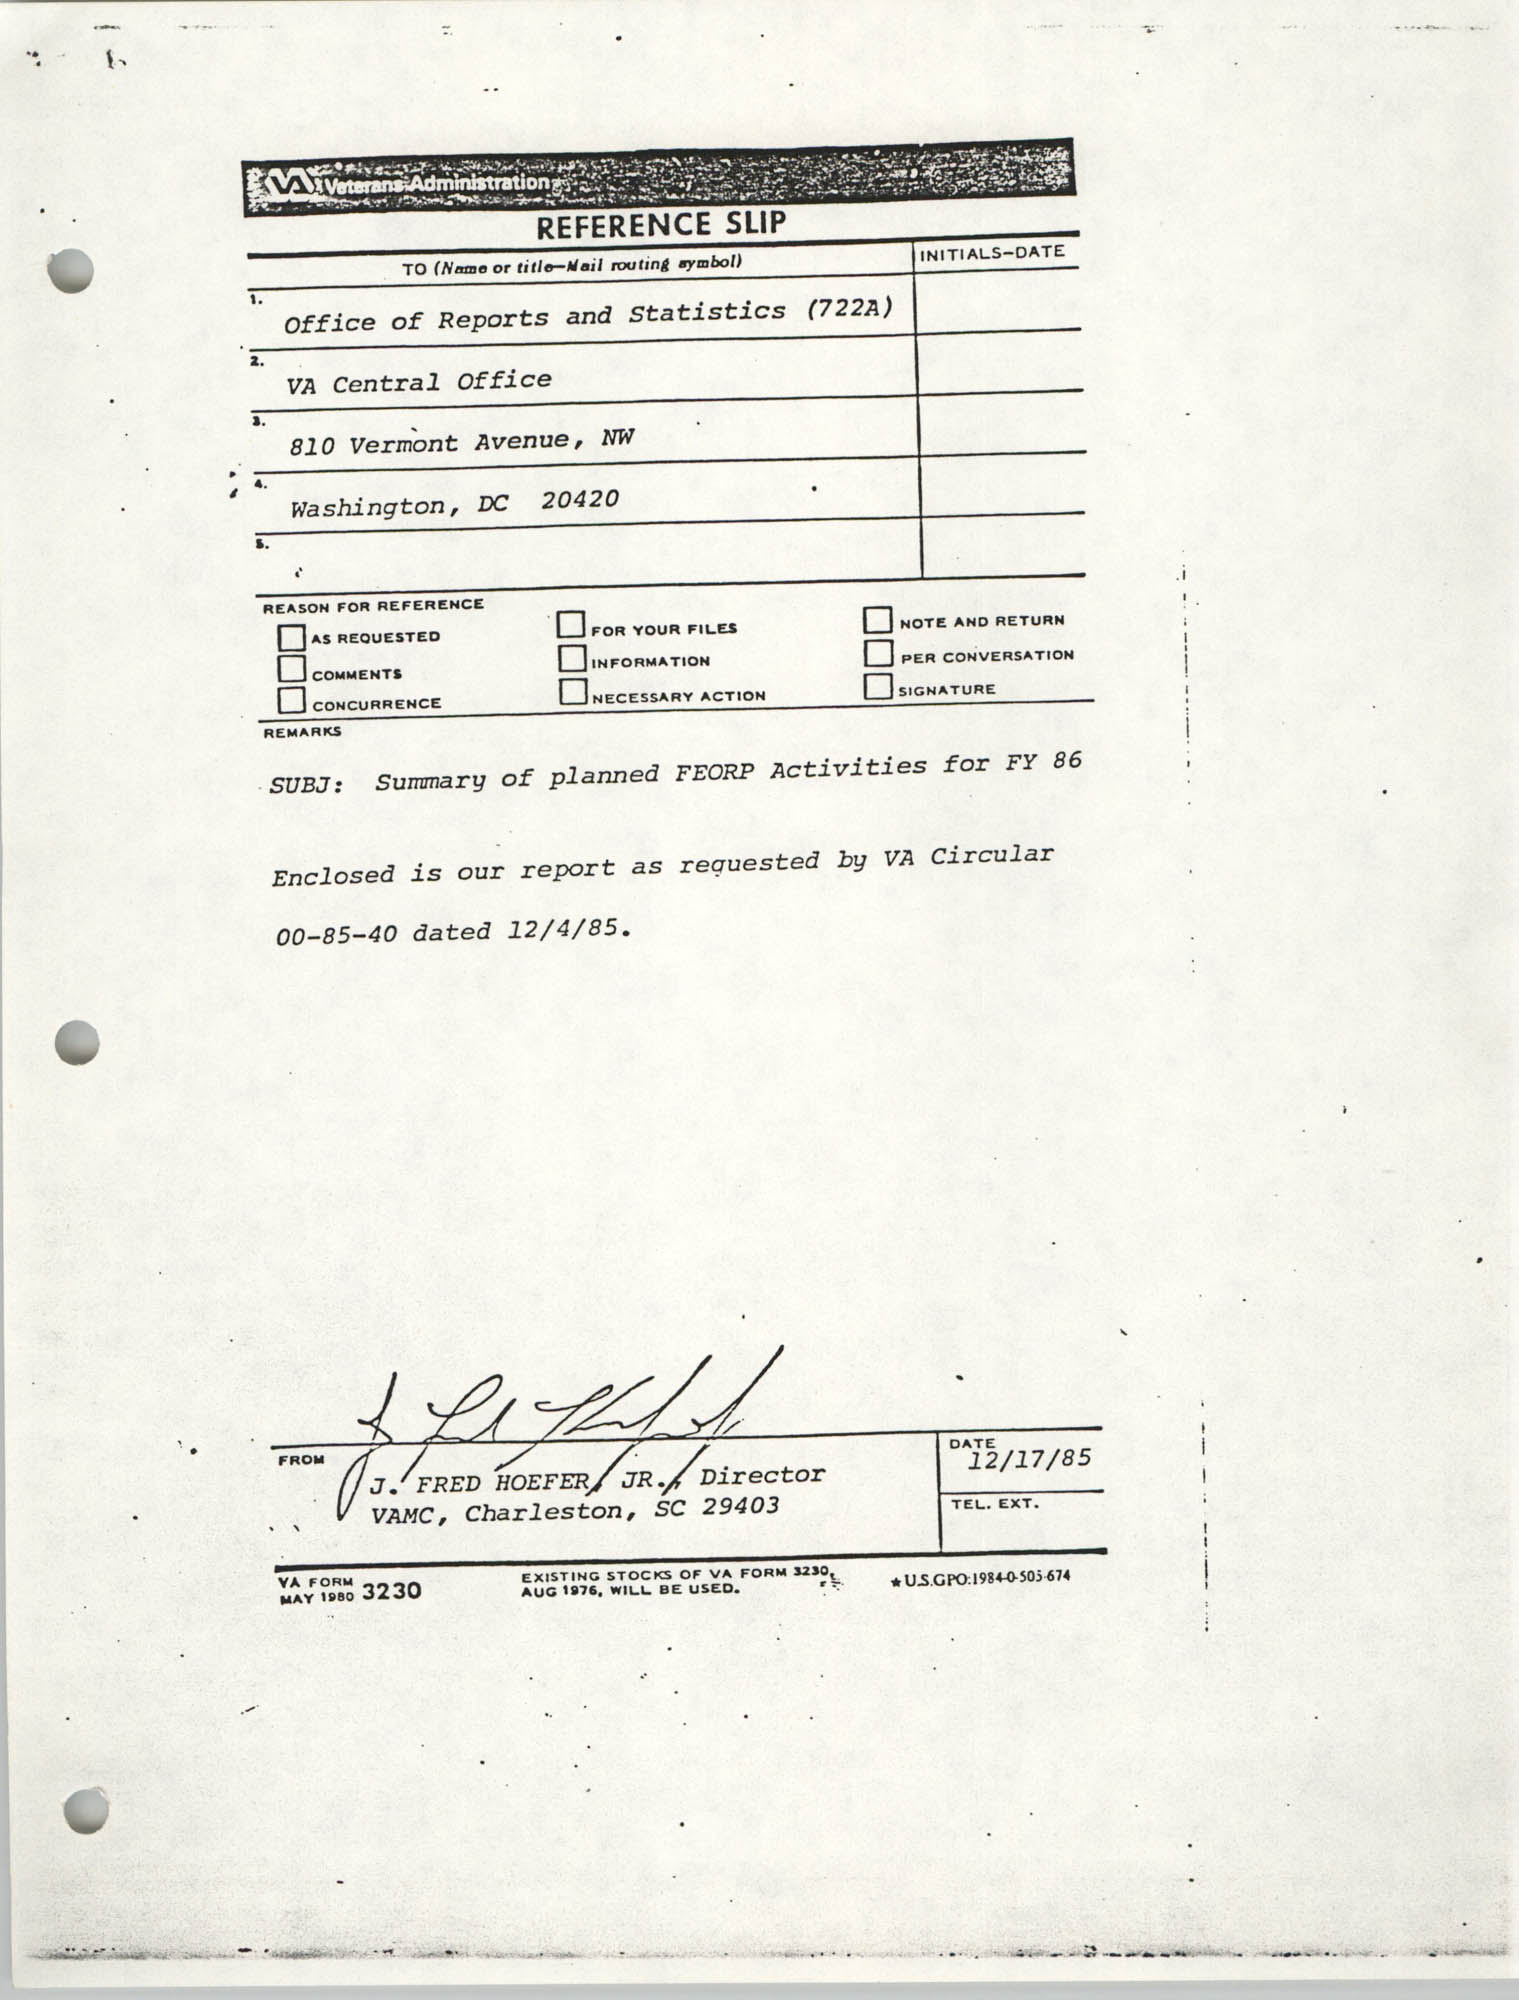 Veterans Administration Reference Slip for Planned FEORP Activities, December 1985